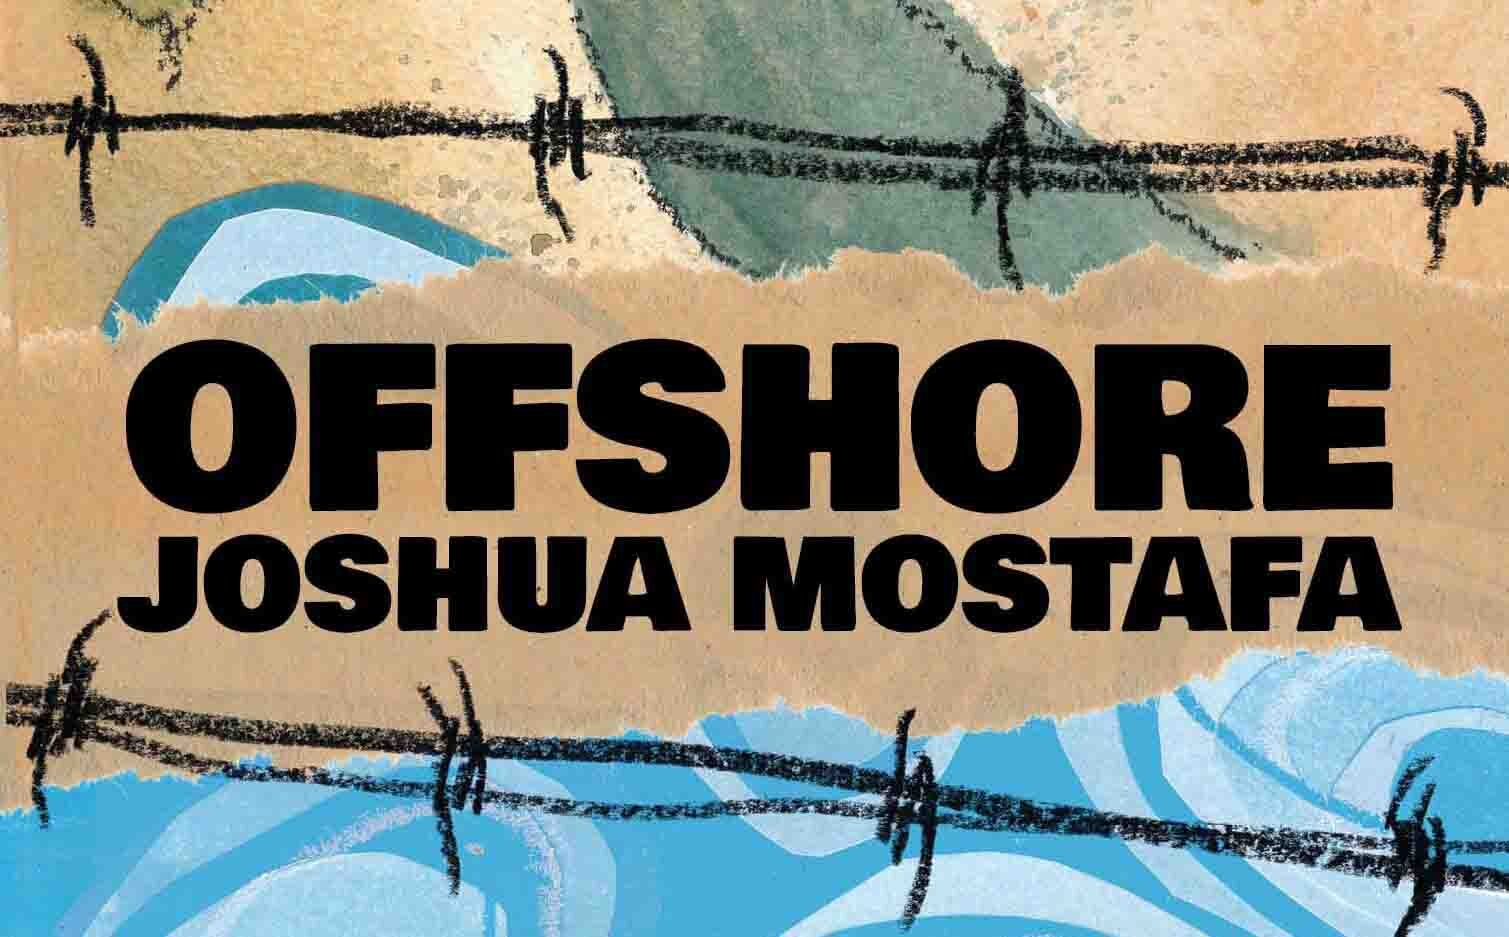 - We're thrilled to announce that Offshore by Joshua Mostafa has been optioned by filmaker Partho Sen-Gupta